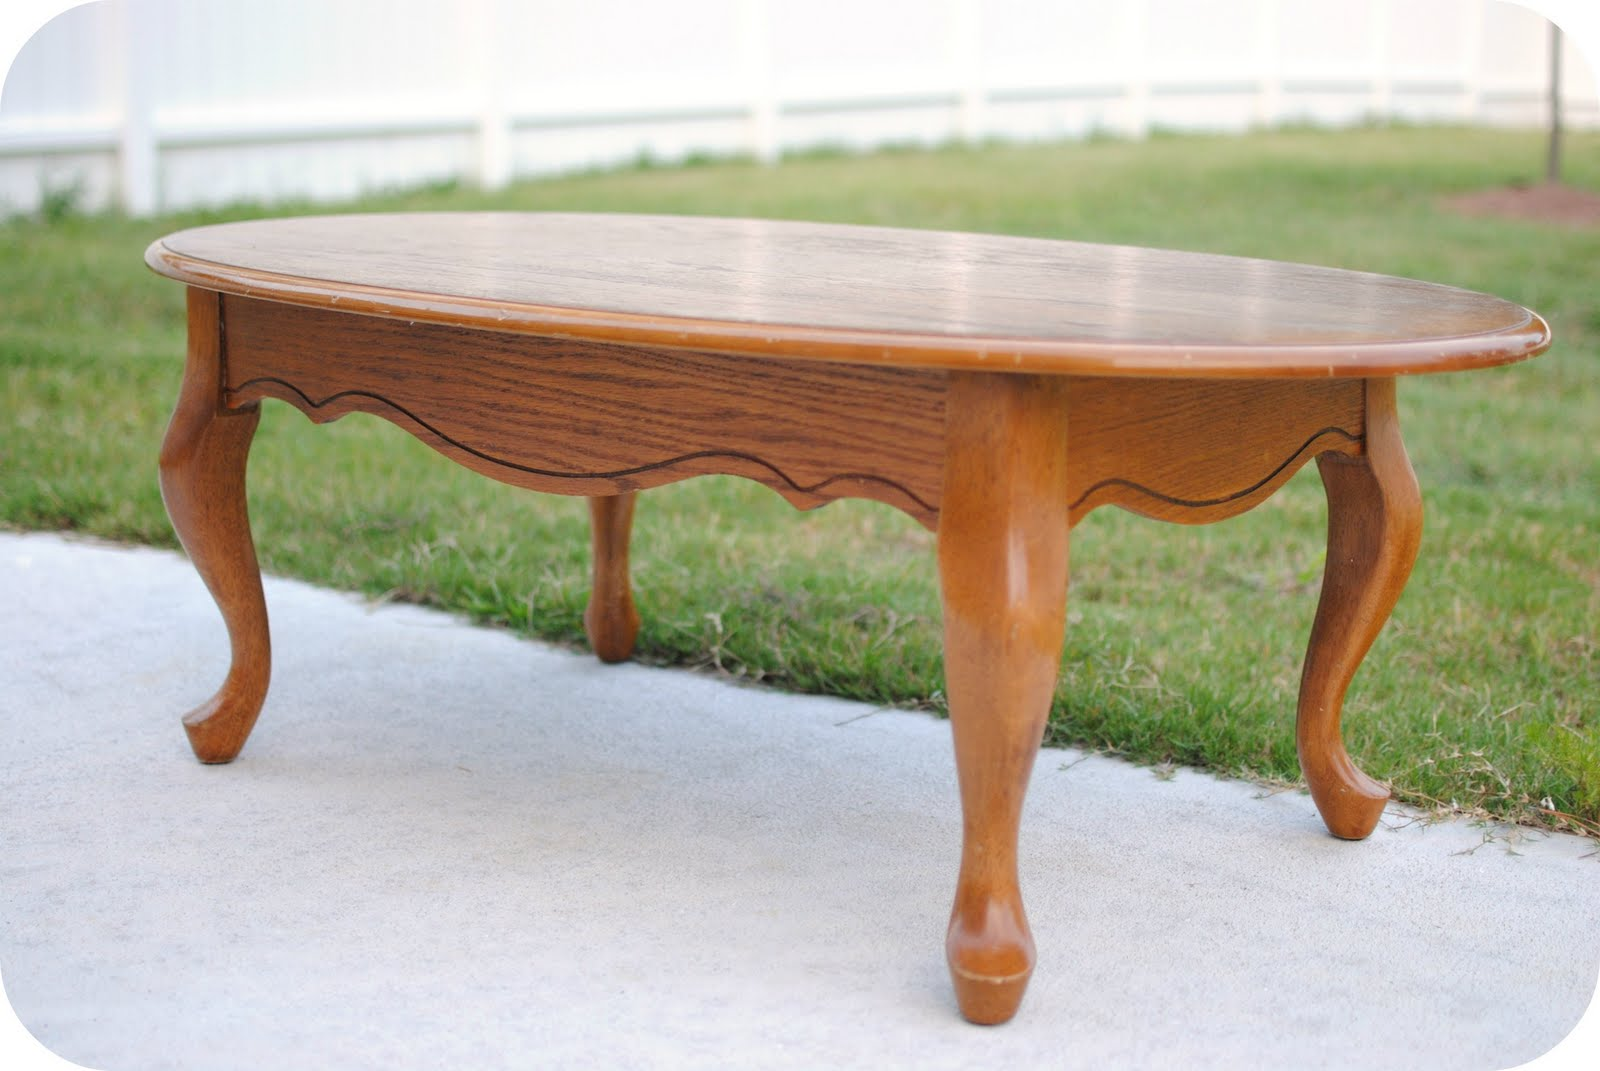 Pbjstories thrifty goodwill table makeover thrifty goodwill table makeover geotapseo Image collections